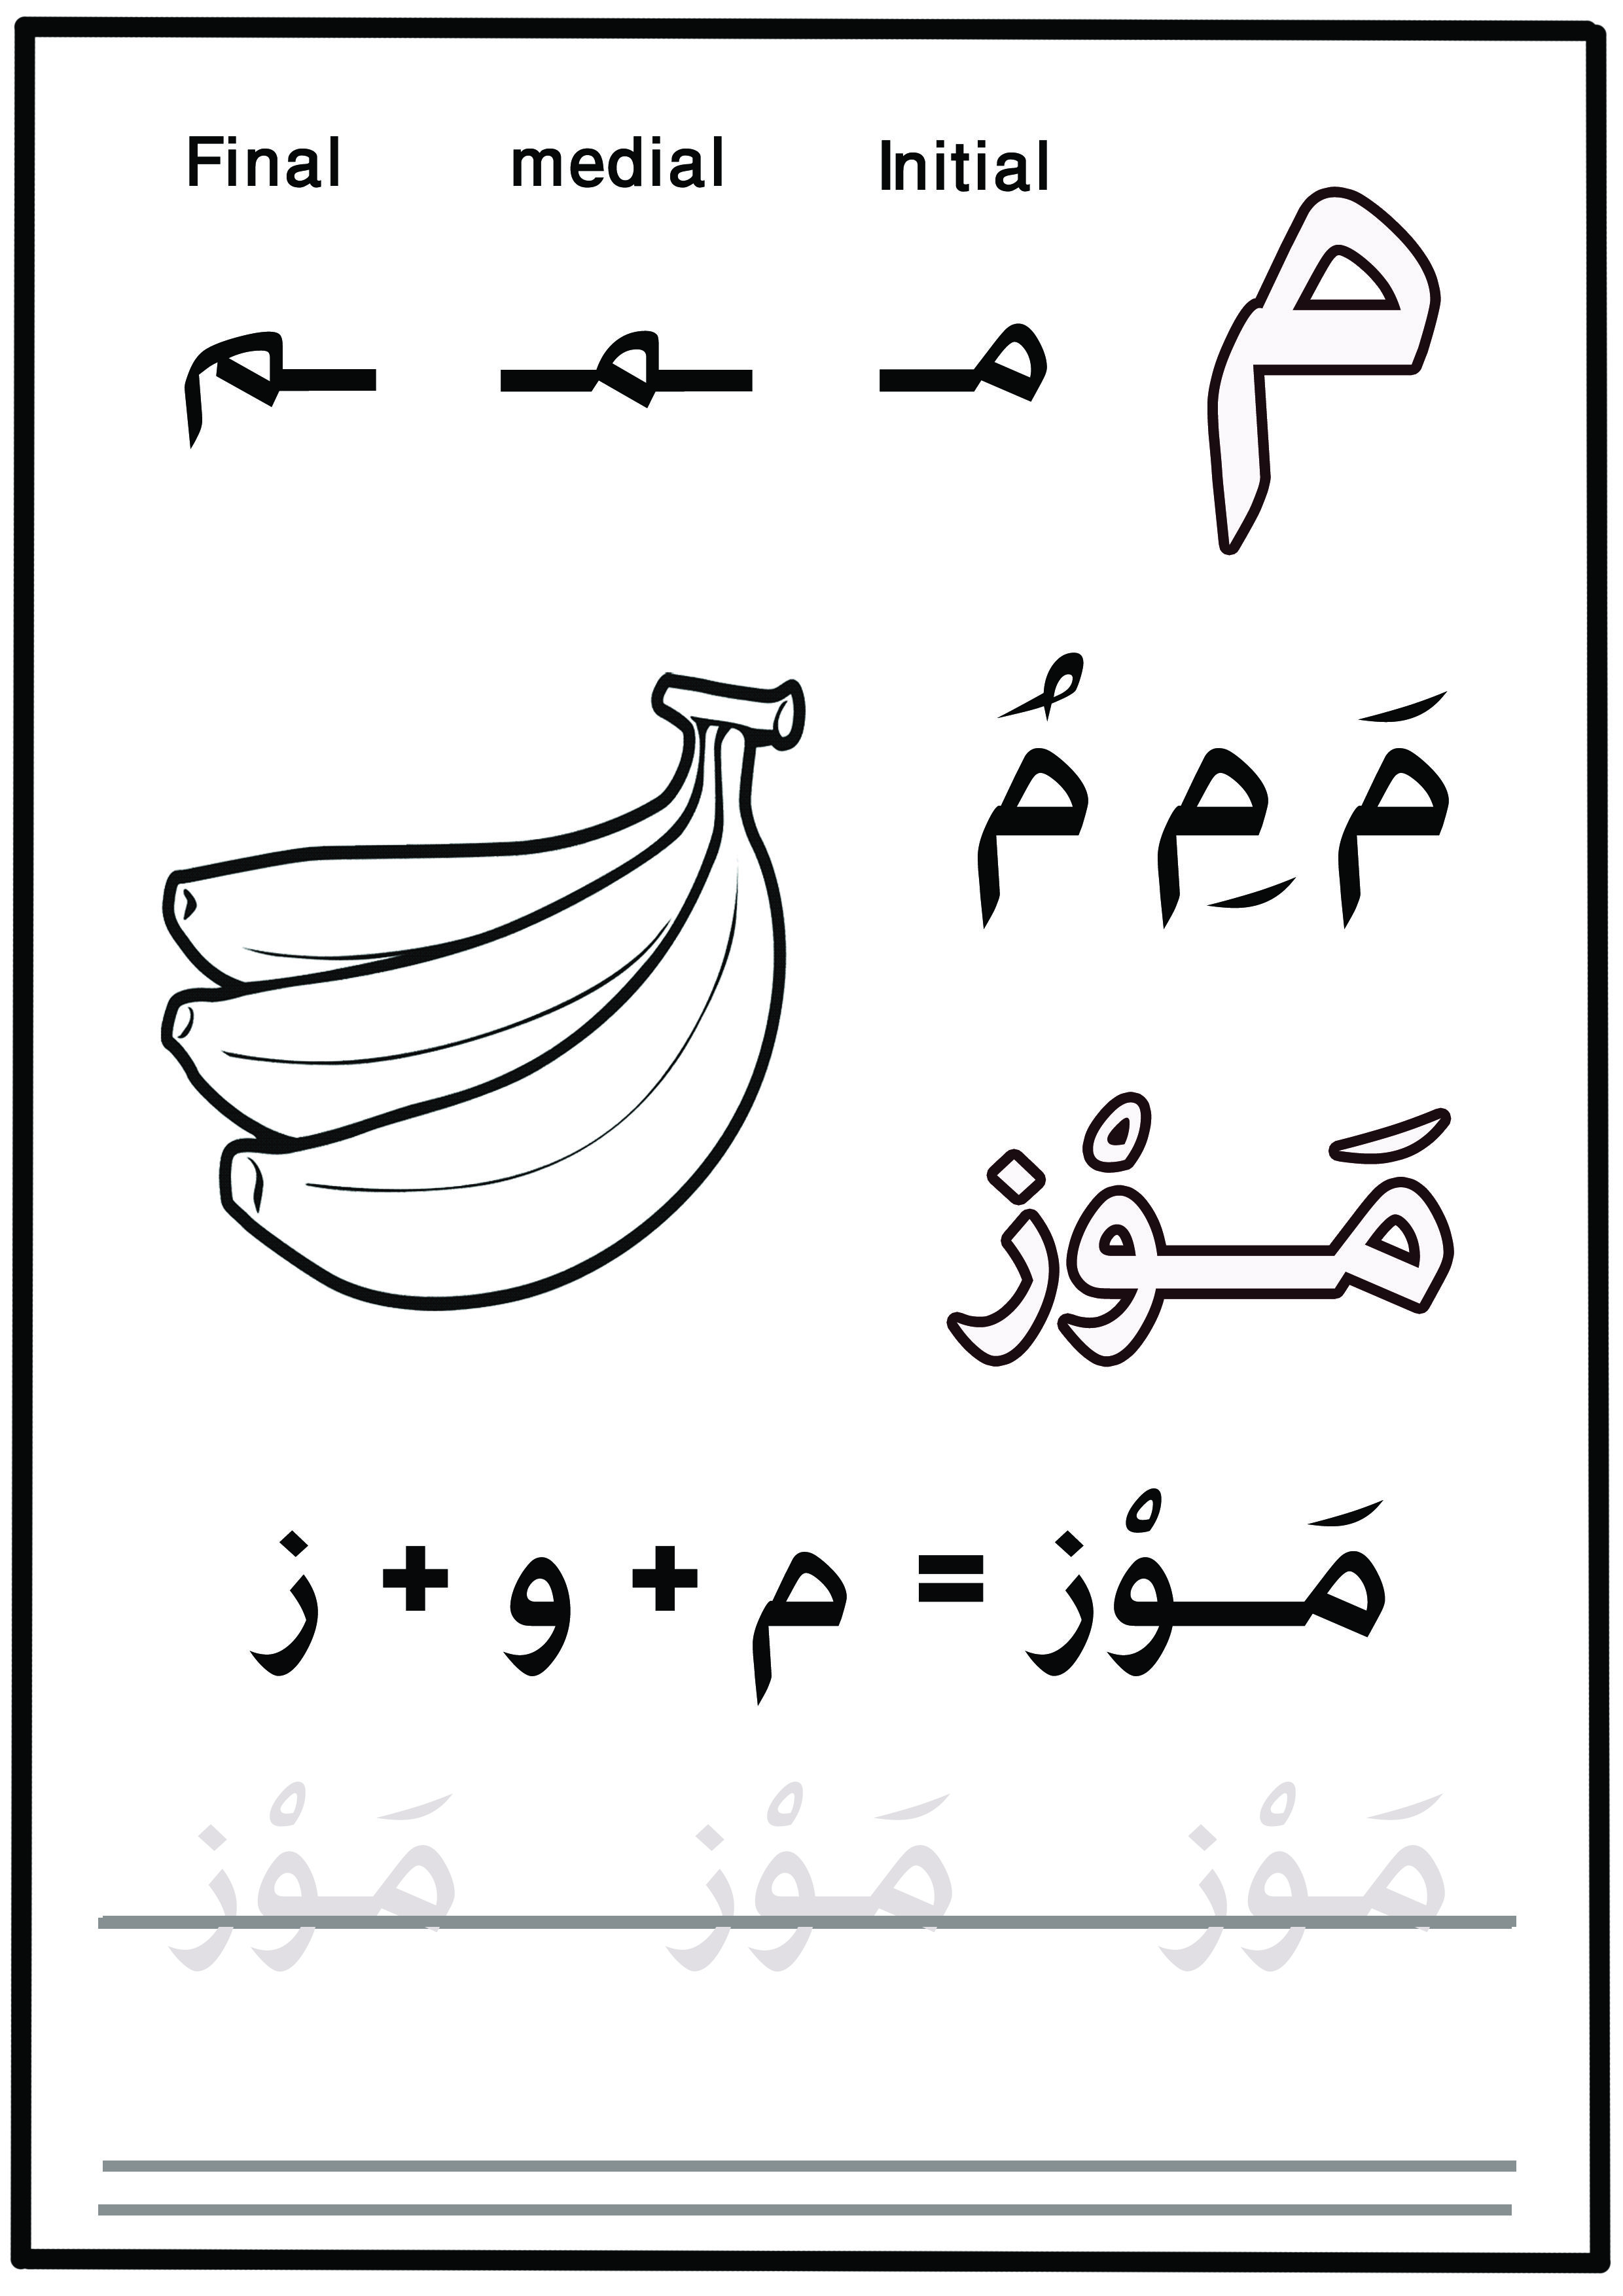 My First Letters And Words Book حرف الميم Practicelearnarabic For More Exercicesو Please Join Pra Learn Arabic Alphabet Learning Arabic Arabic Handwriting